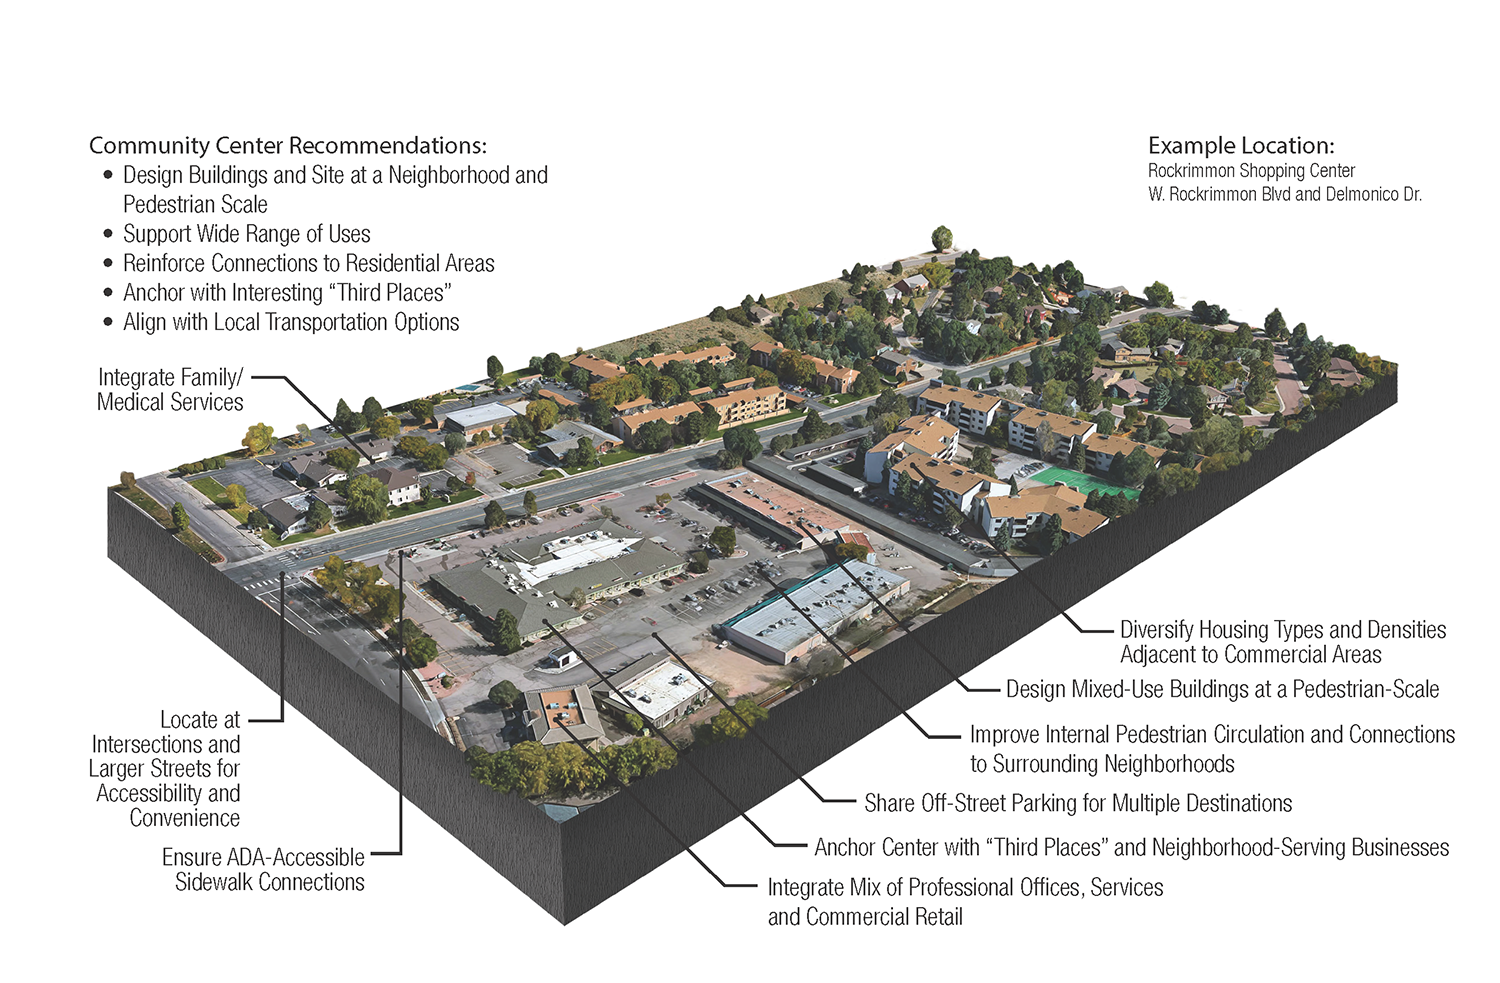 map showing community center recommendations